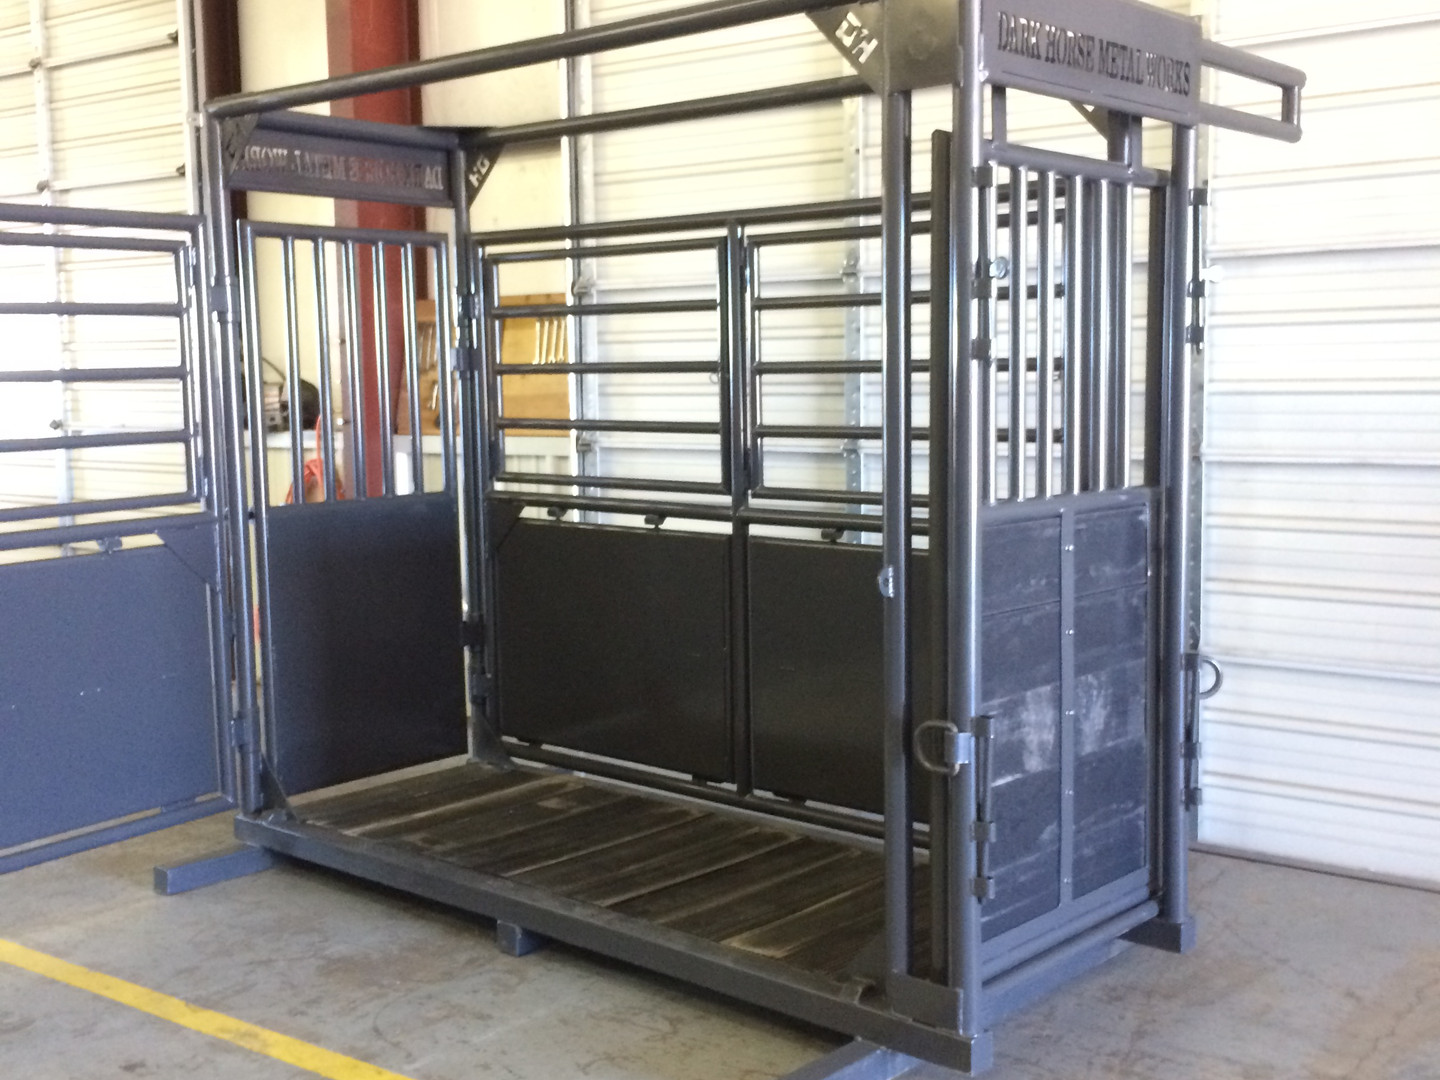 Horse stanchion for livestock vet needs and care